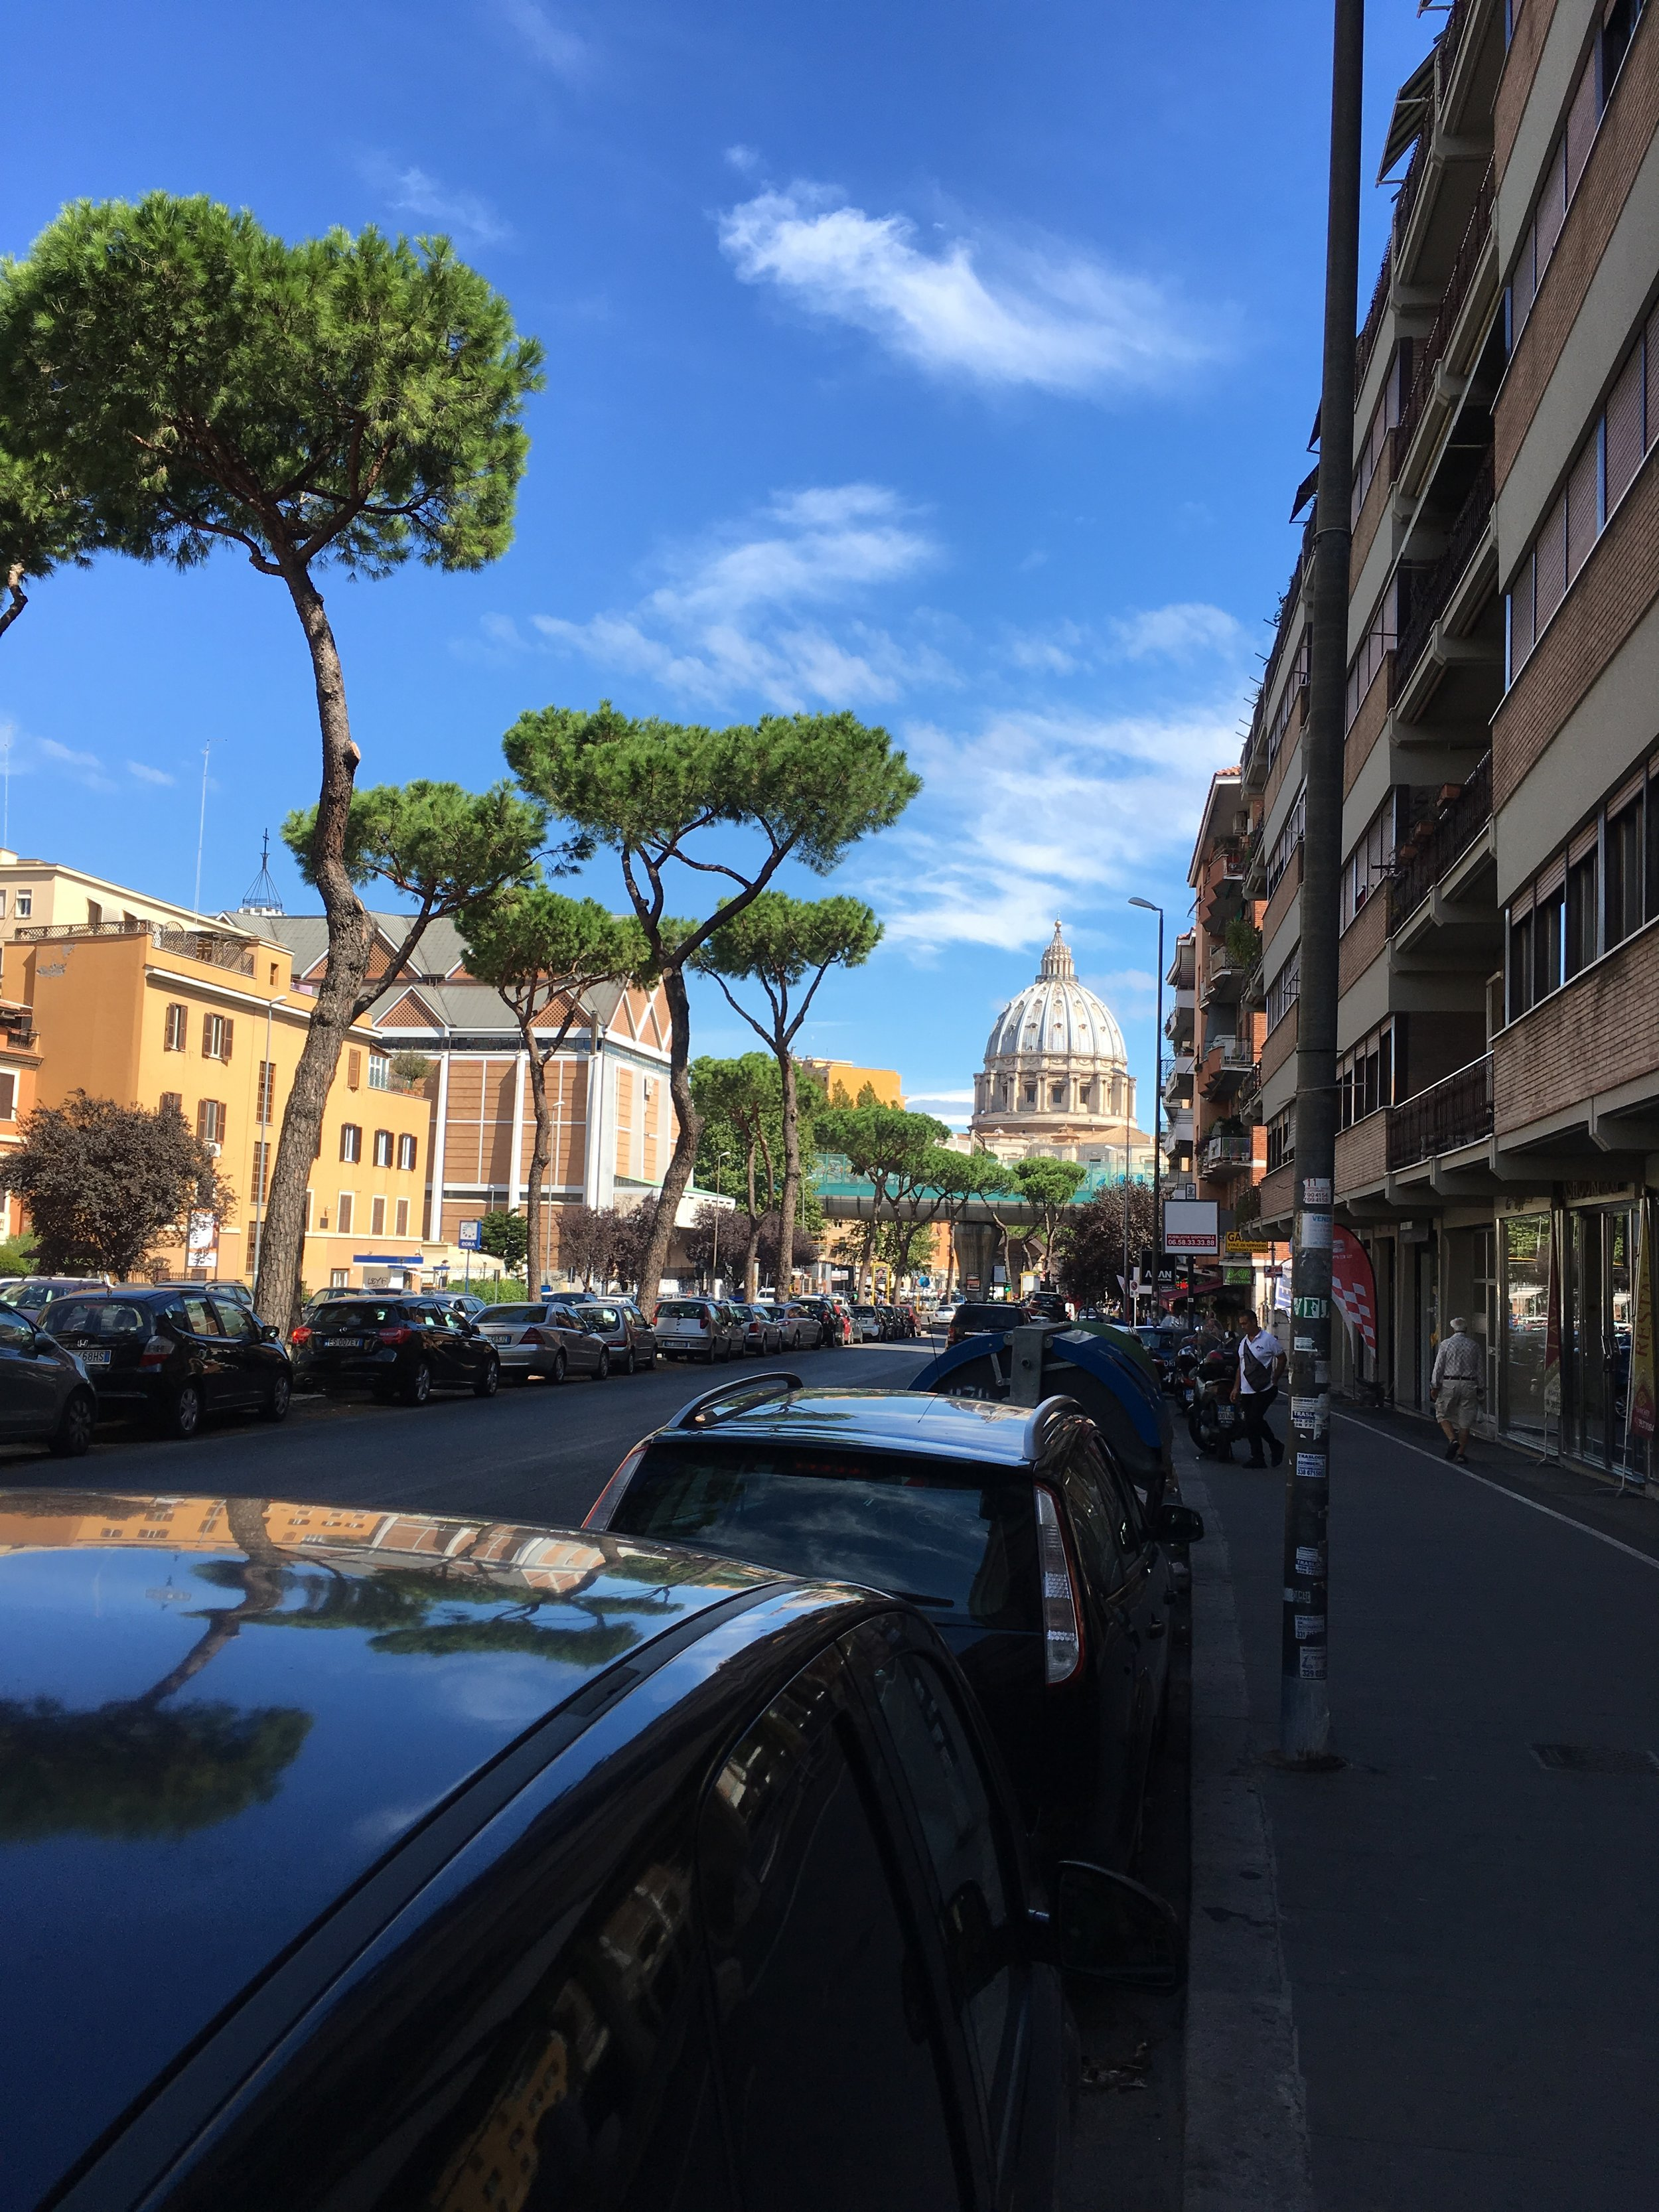 you could see the vatican from the main street by our cottage